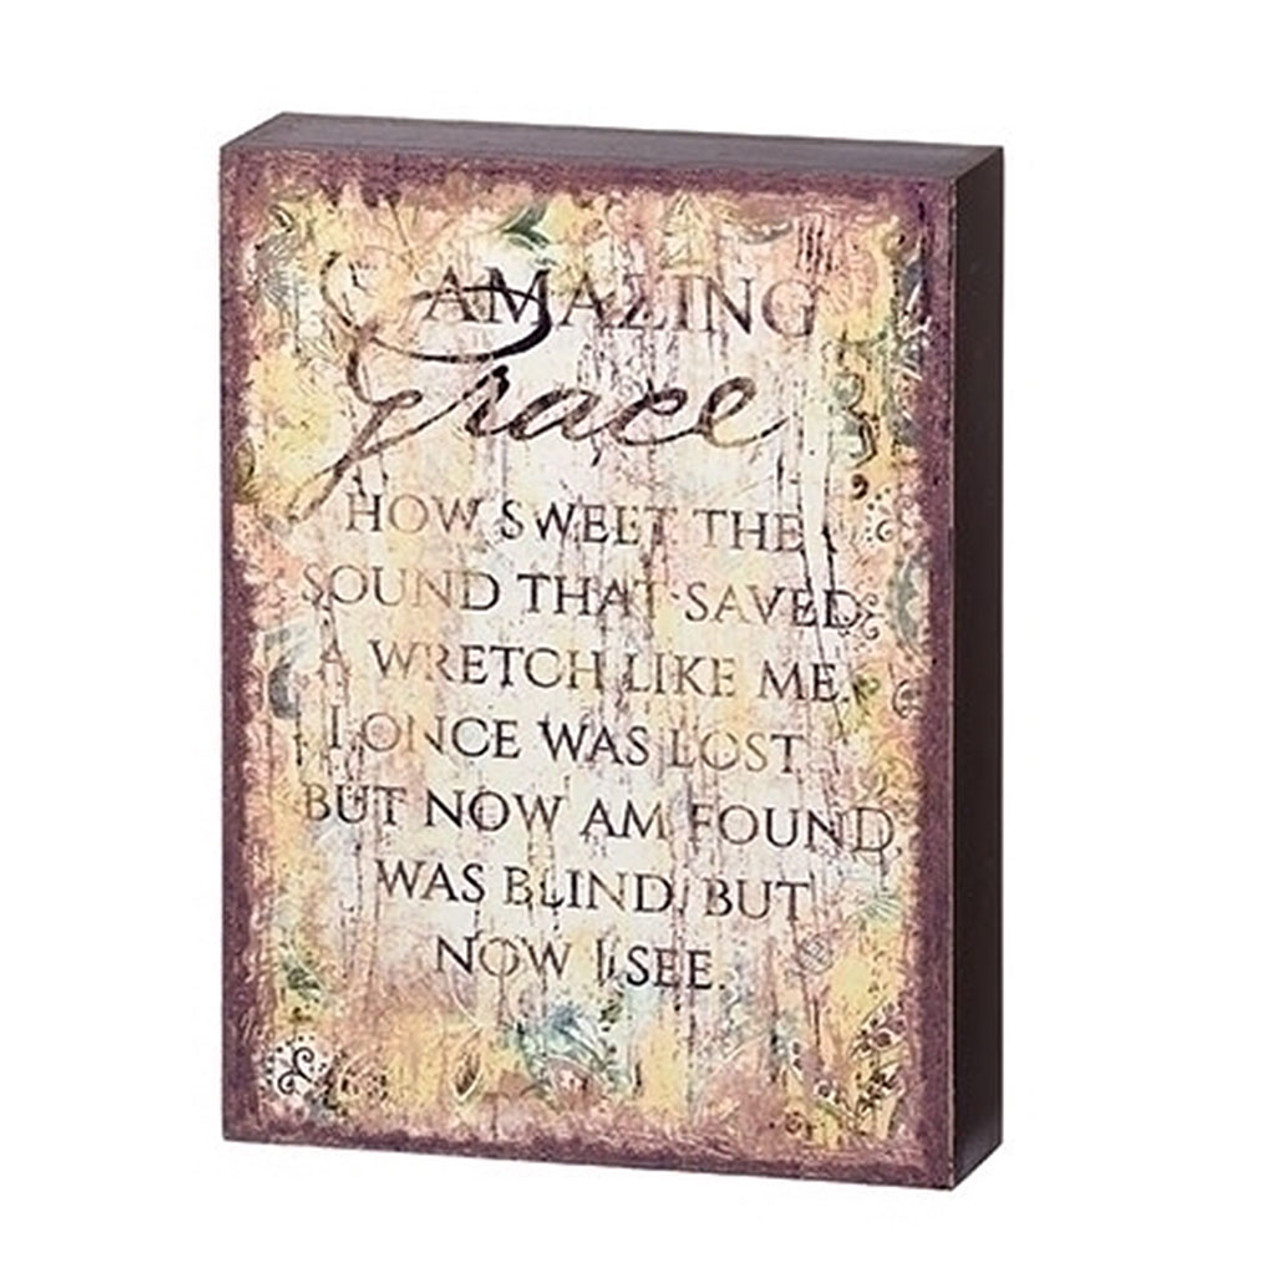 Amazing Grace Rectangular Wall Plaque 7.75 IN